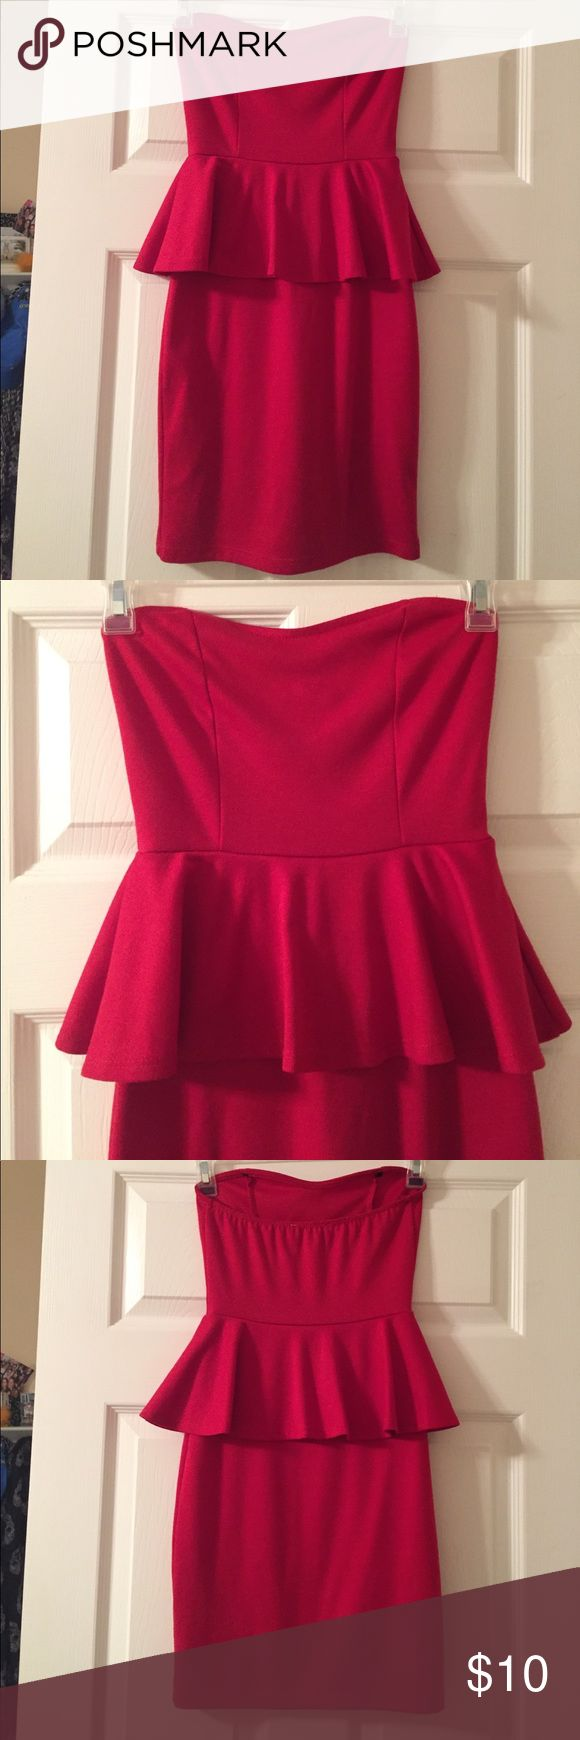 Red Strapless Peplum Dress Strapless red peplum dress in a nice stretchy material. Looks great for a formal or nicer occasion! Neckline is a slight sweetheart style. Only worn once. delias Dresses Strapless